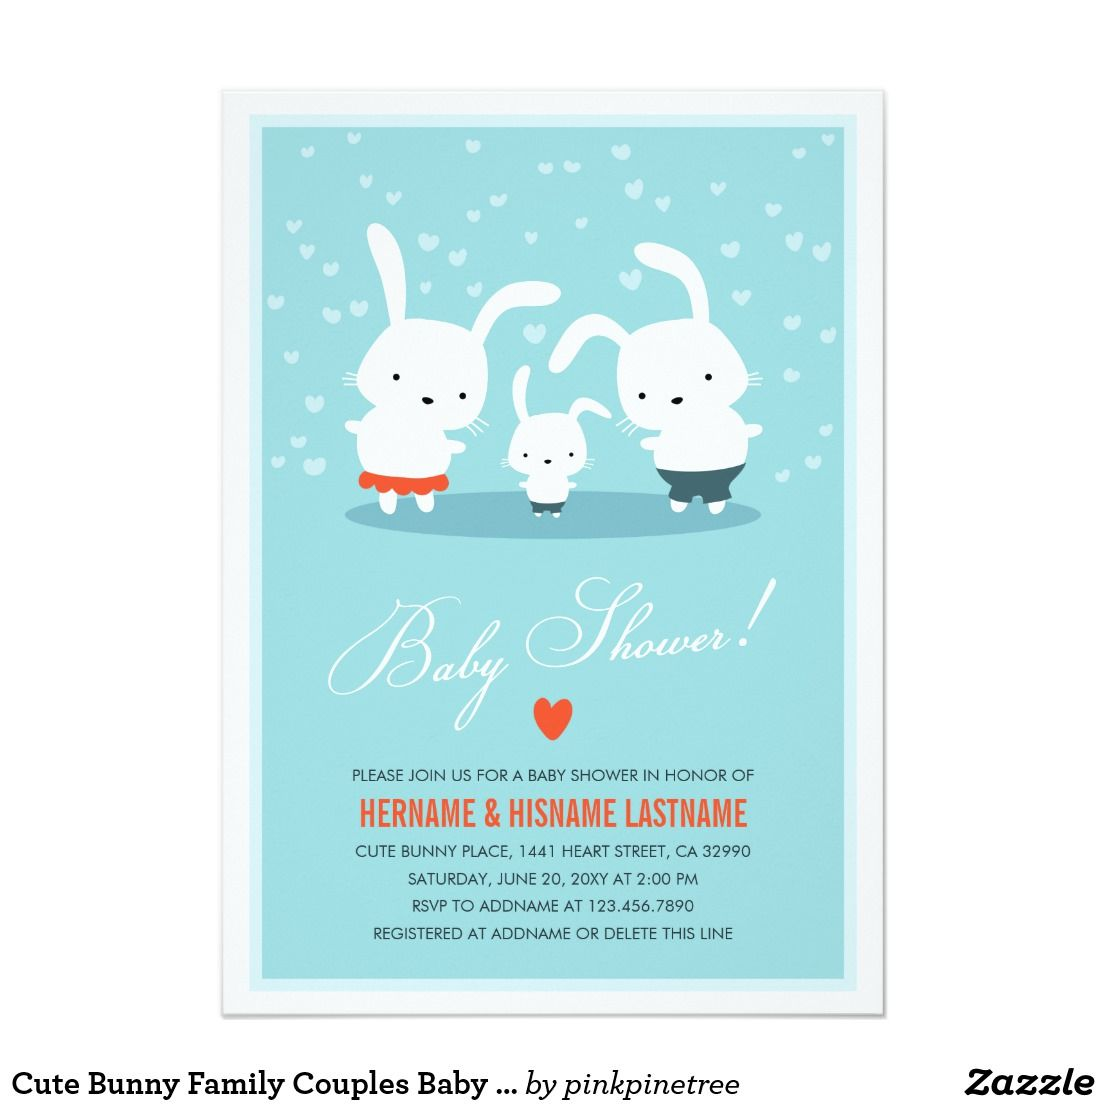 Cute bunny family couples baby shower invite blue couples baby showers cute bunny family couples baby shower invite blue stopboris Images